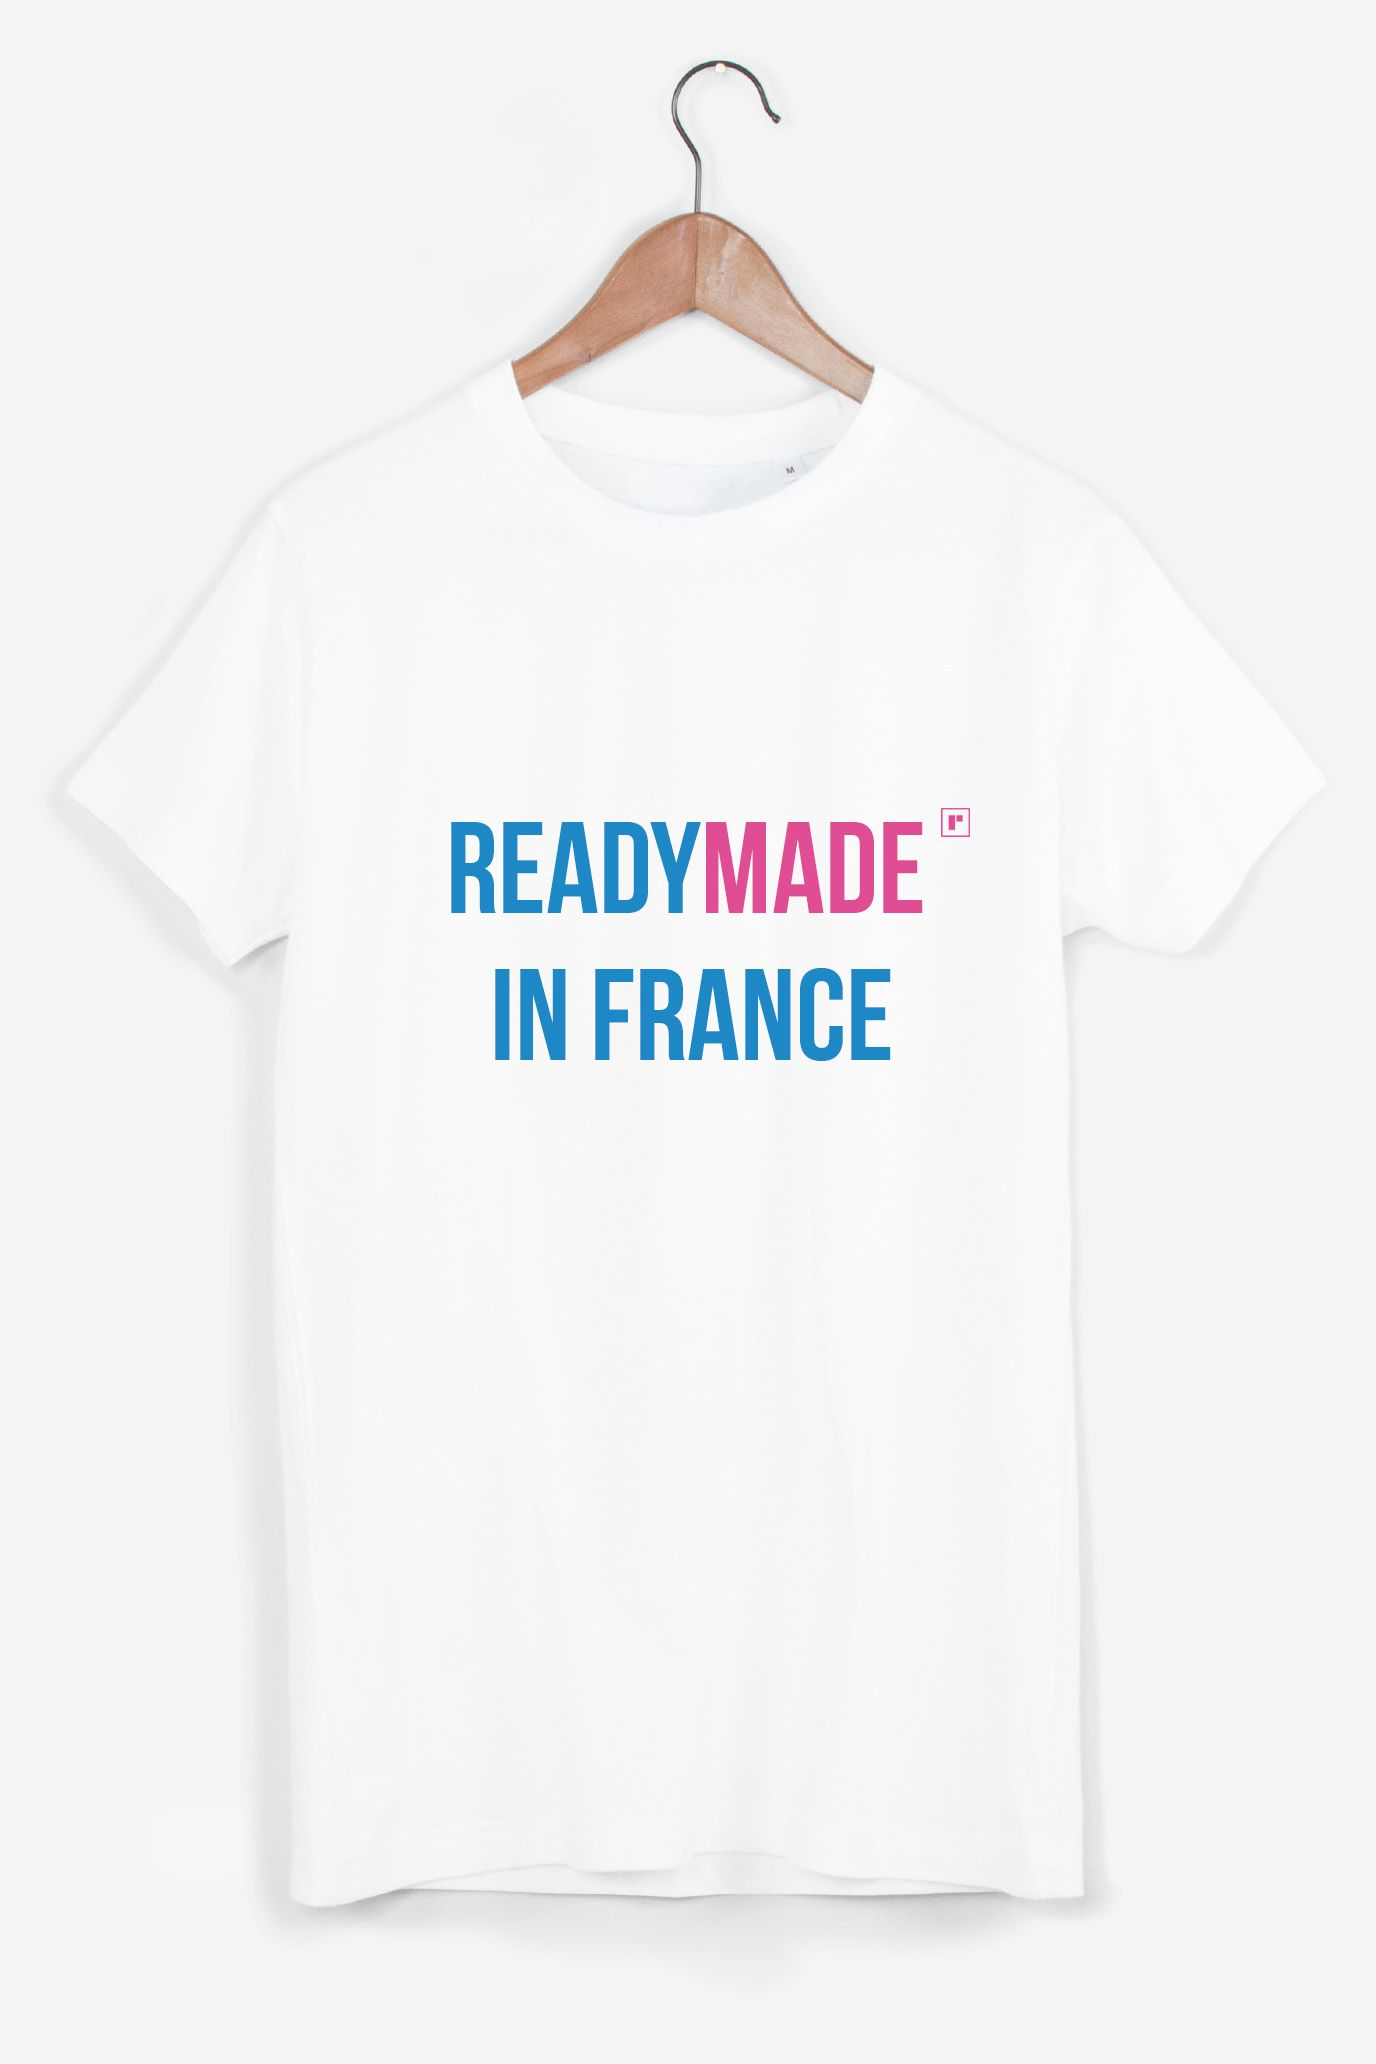 readymadeinfrance